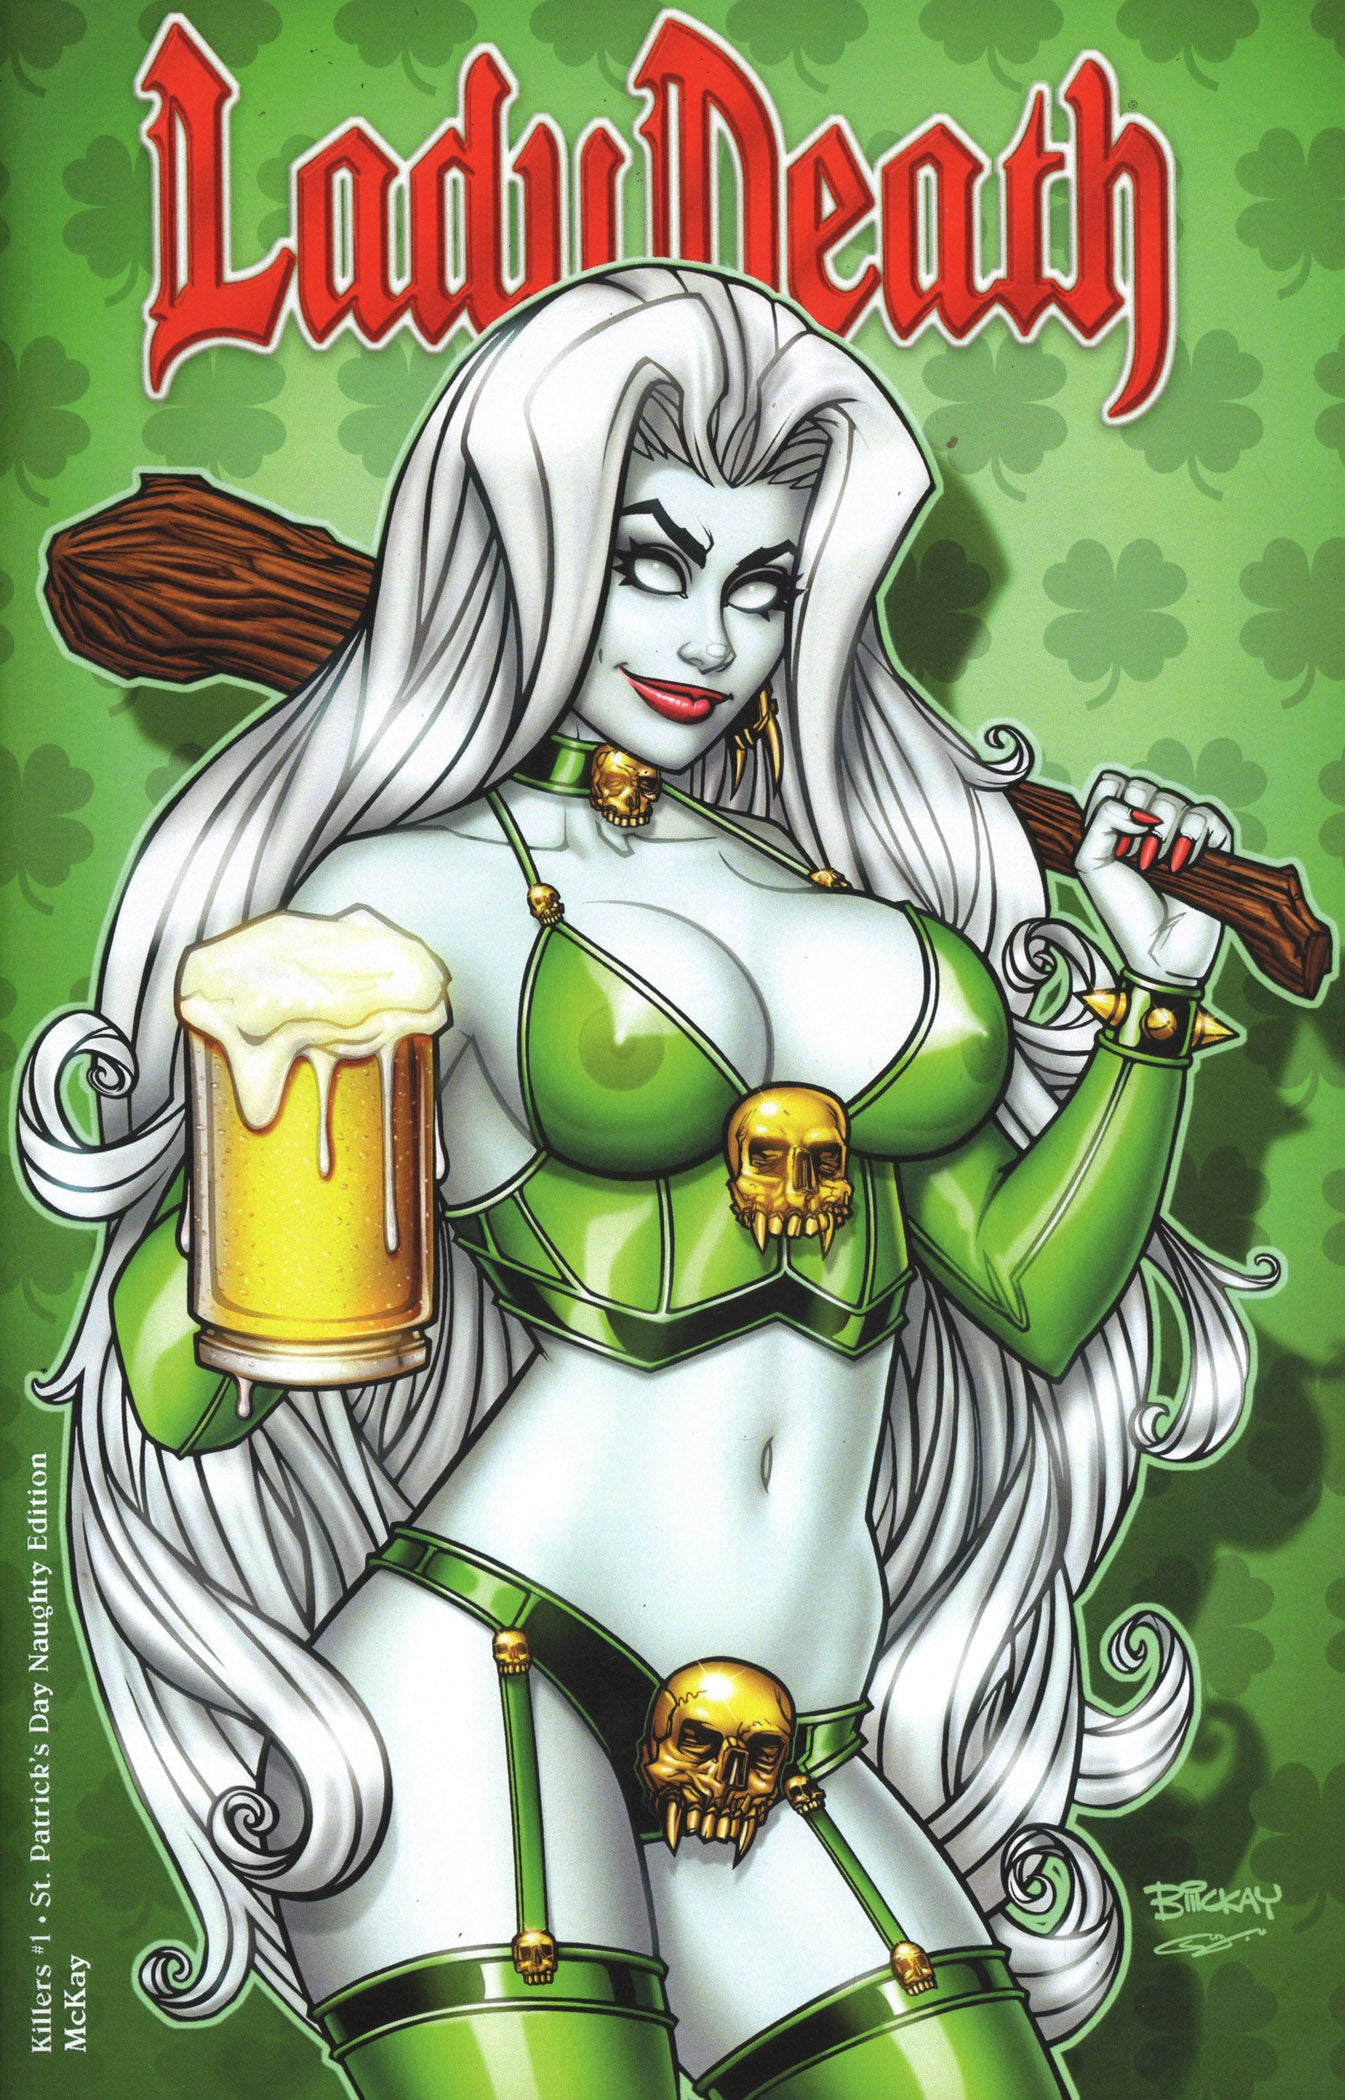 Lady Death: Killers 1. St. Patrick's Day Naughty Edition. McKay Artist Proof 1 of 5